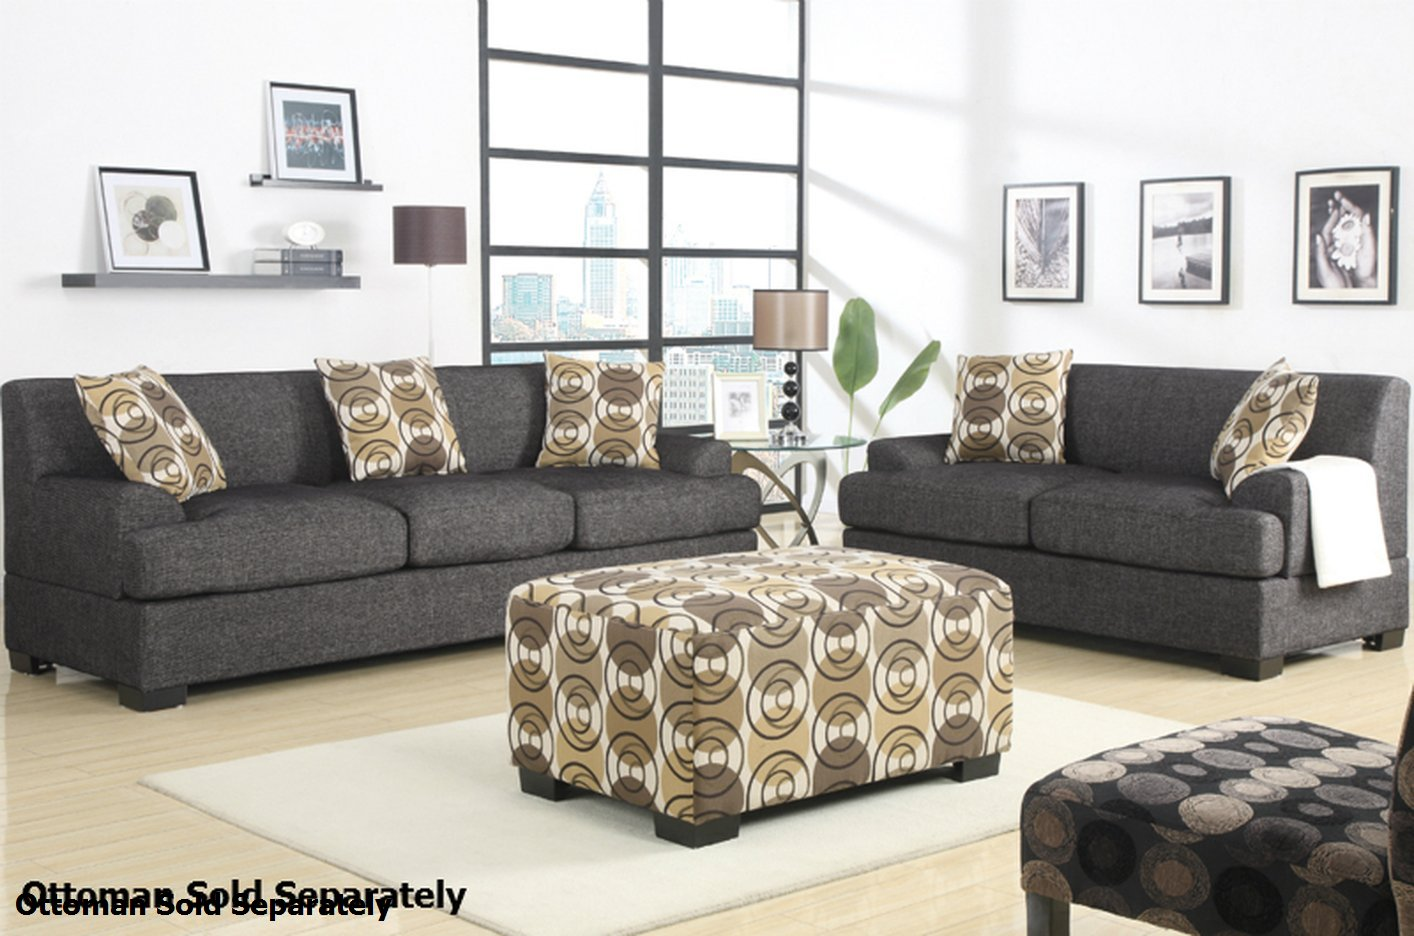 Poundex montreal f7447 f7446 grey fabric sofa and loveseat Fabric sofas and loveseats